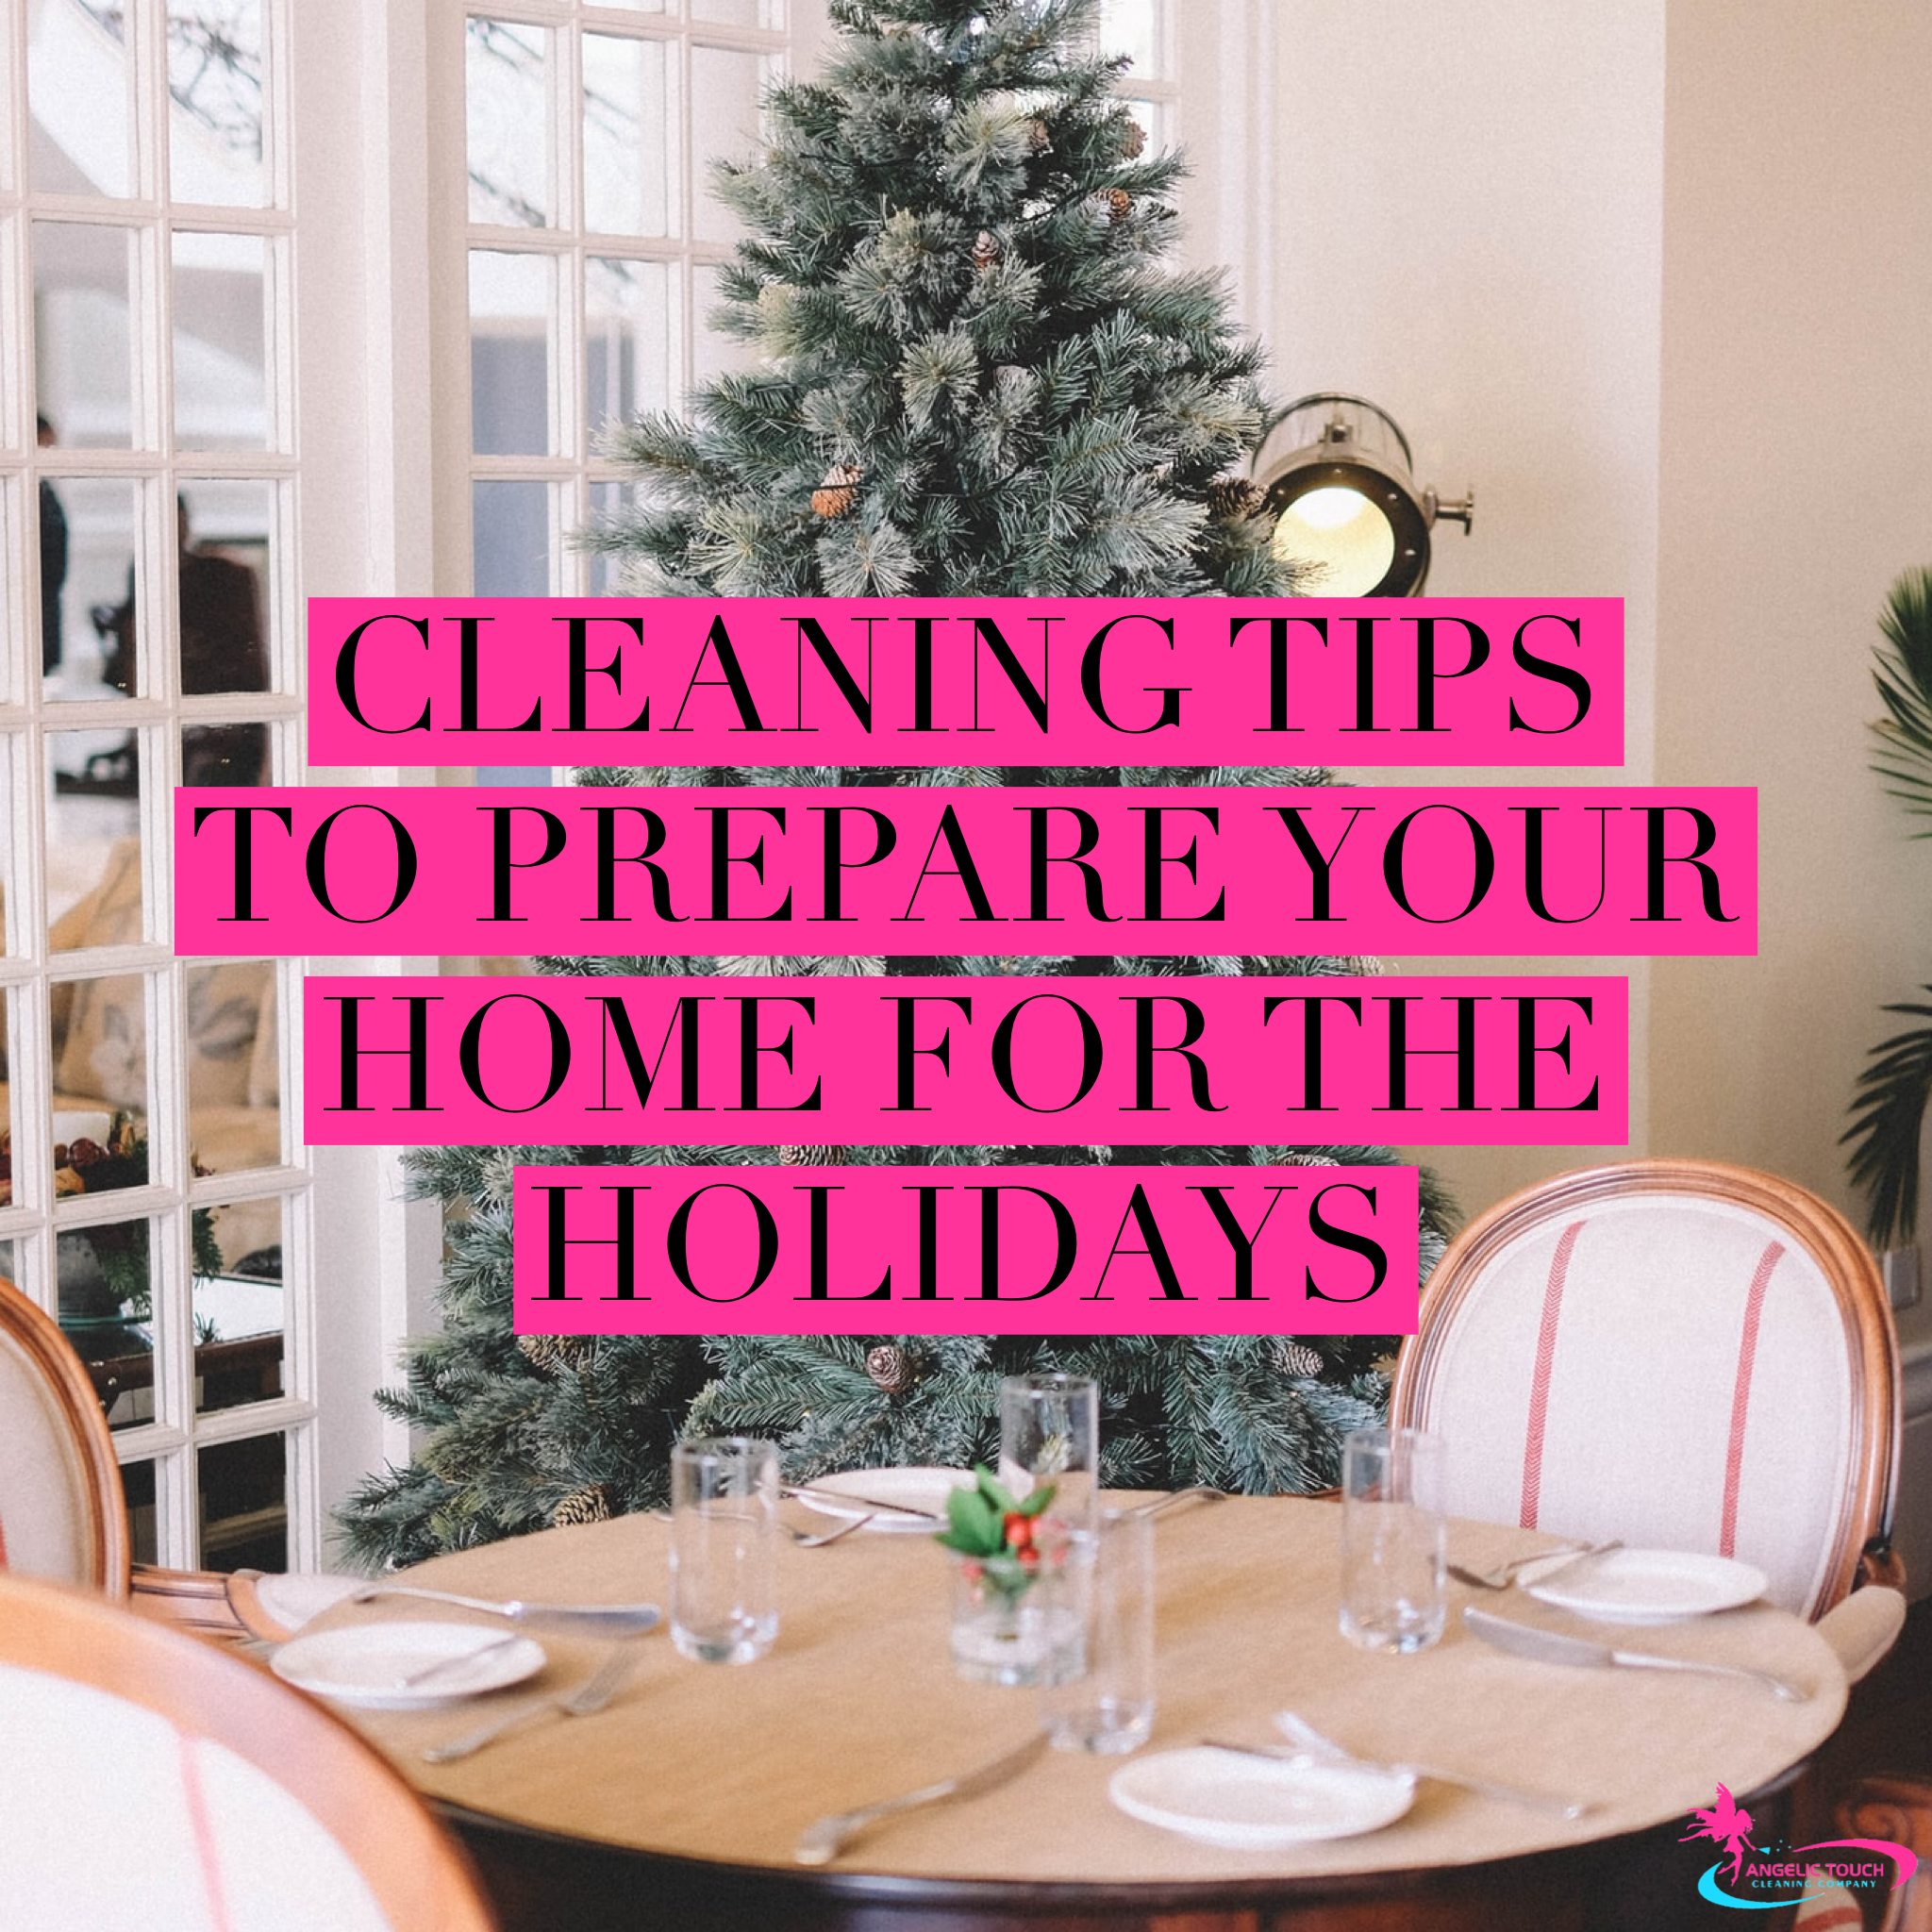 Cleaning Tips to Prepare Your Home for the Holidays